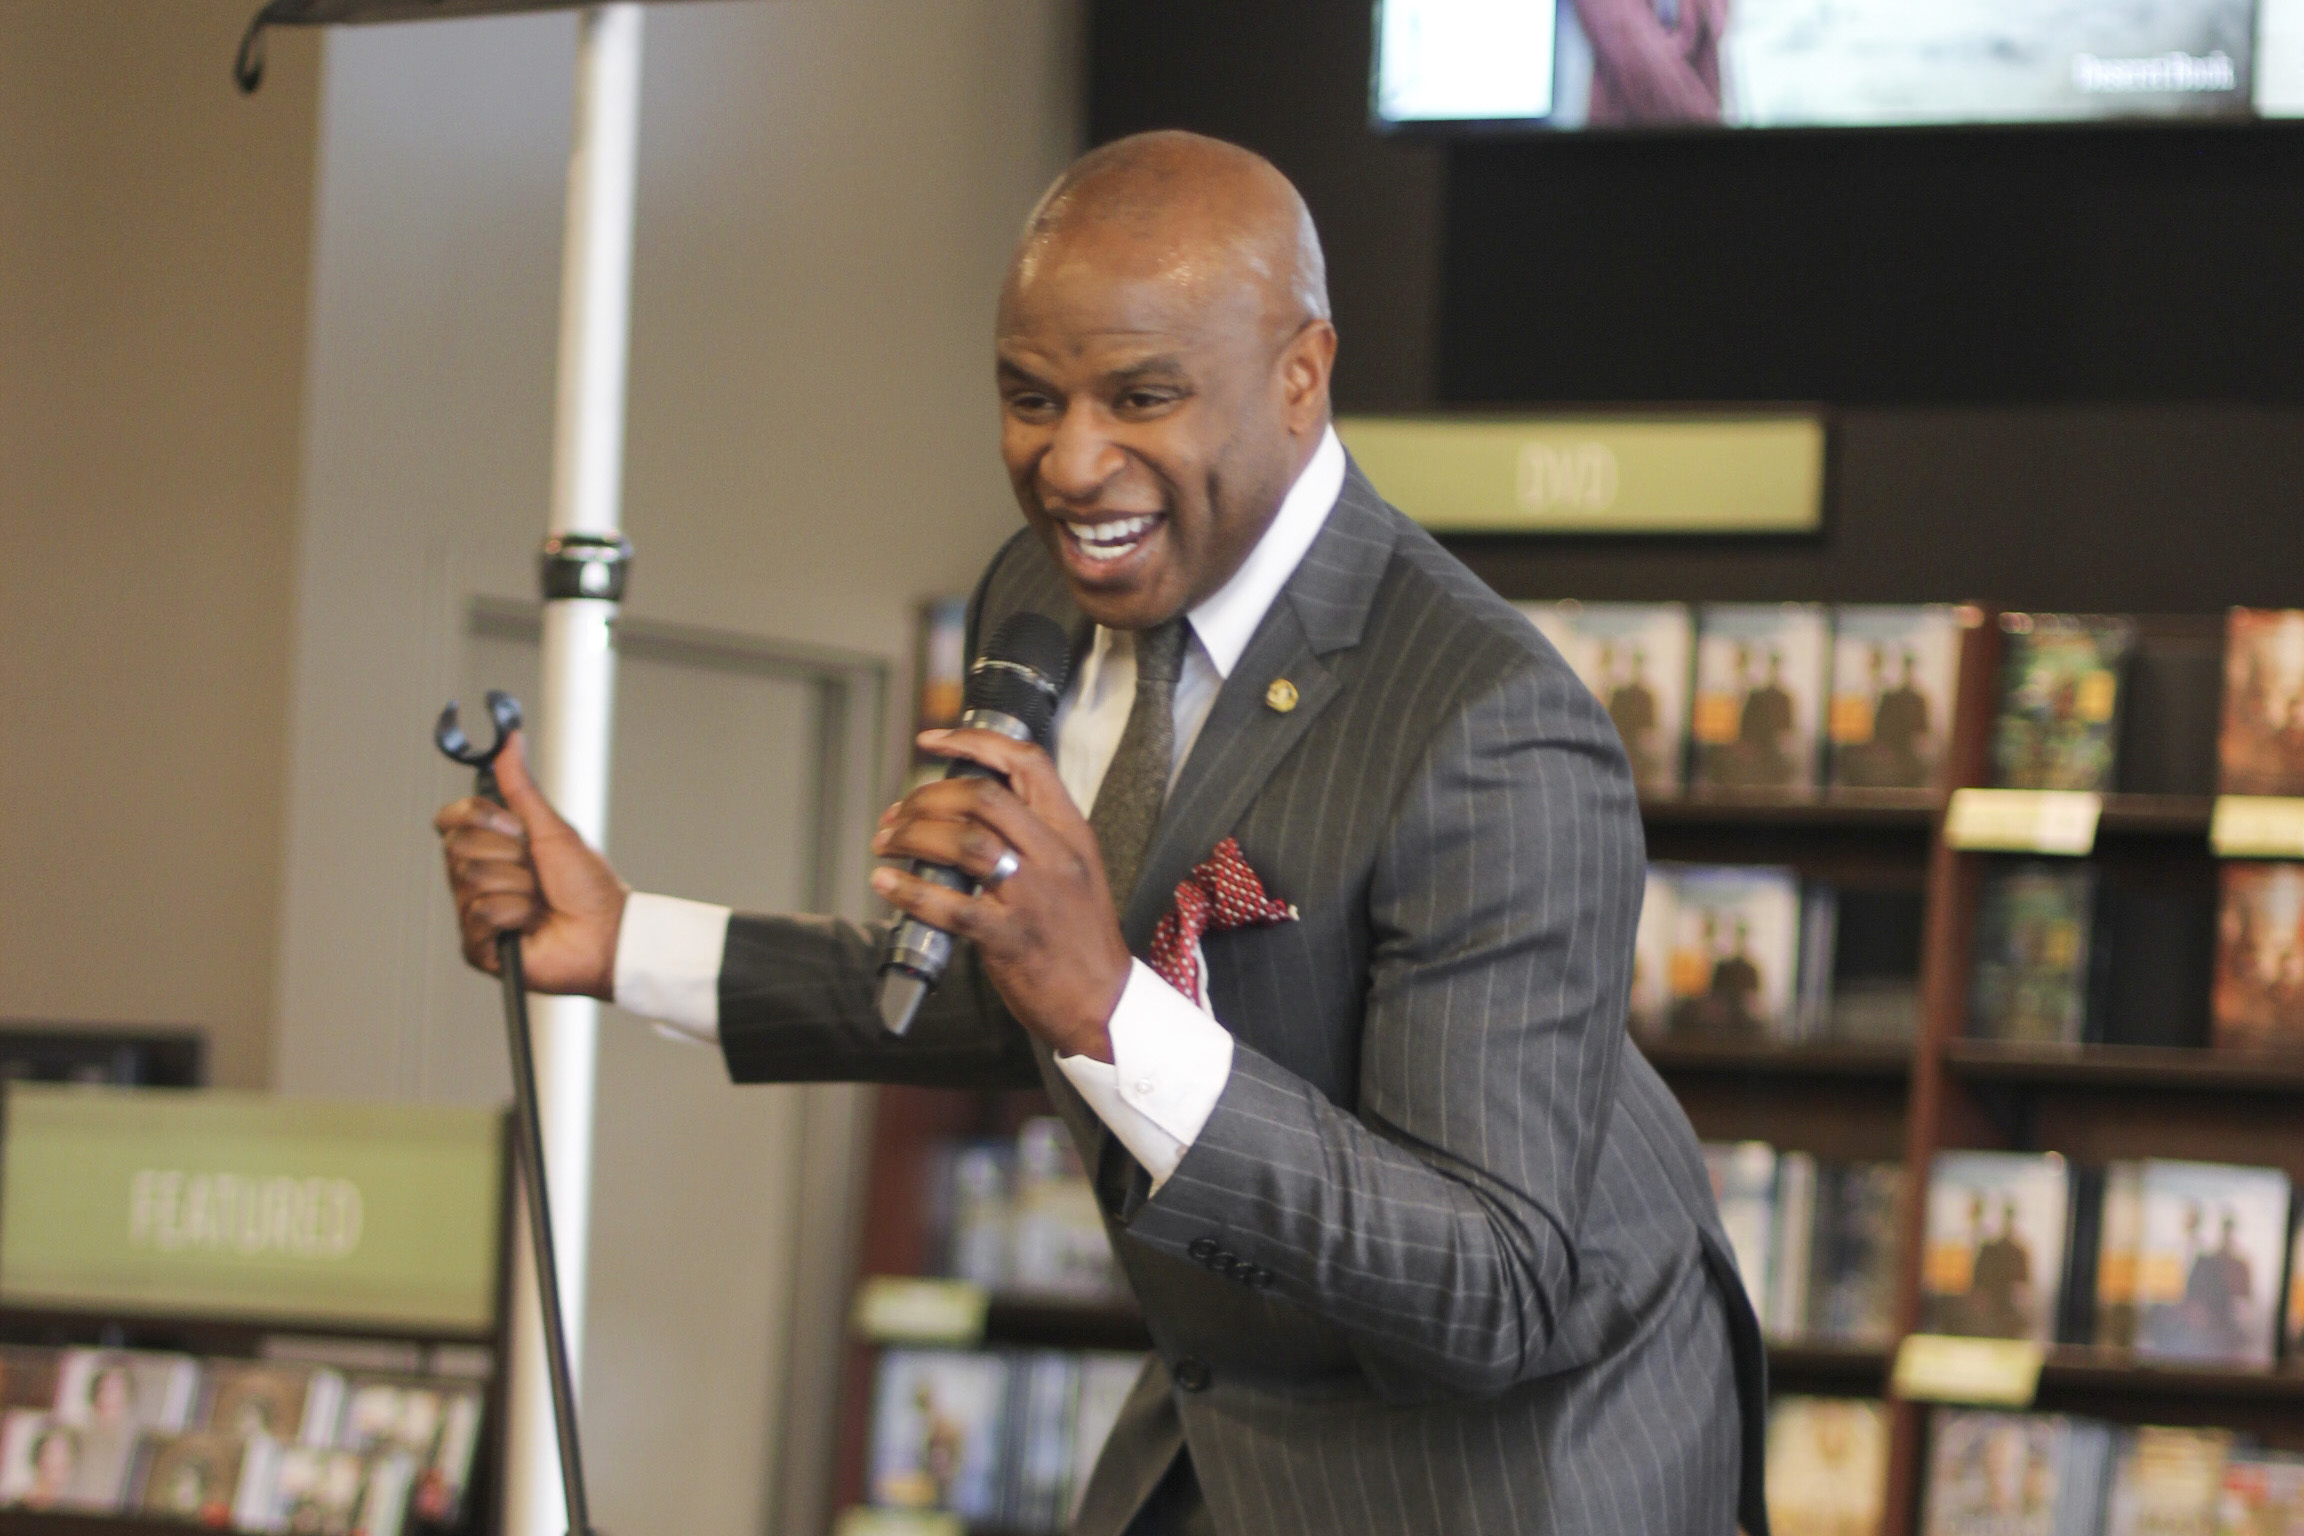 Alex Boye and others perform at Deseret Book in Salt Lake City